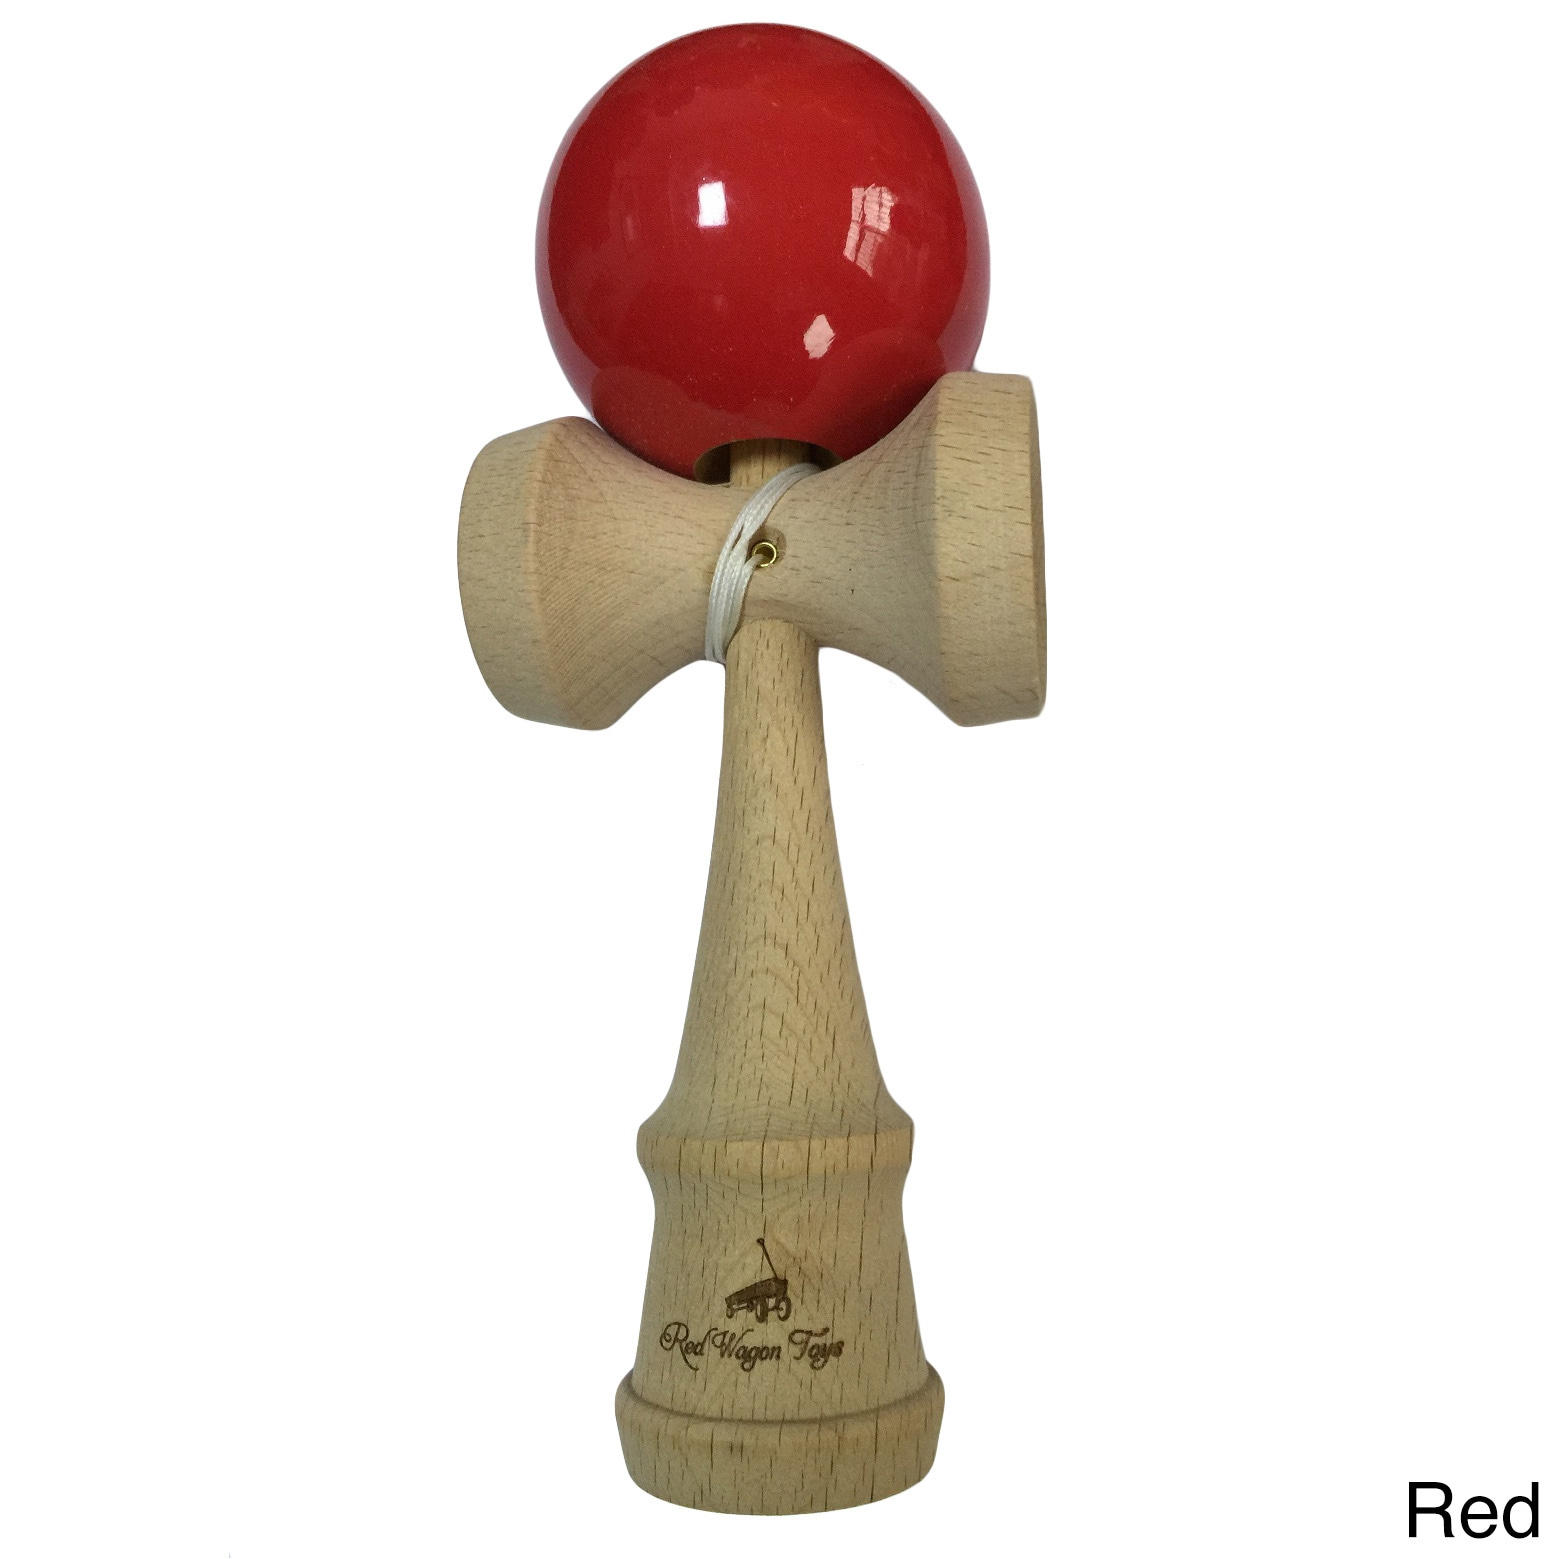 SEAICH Classic Beech Wood Kendama Toy (Red)